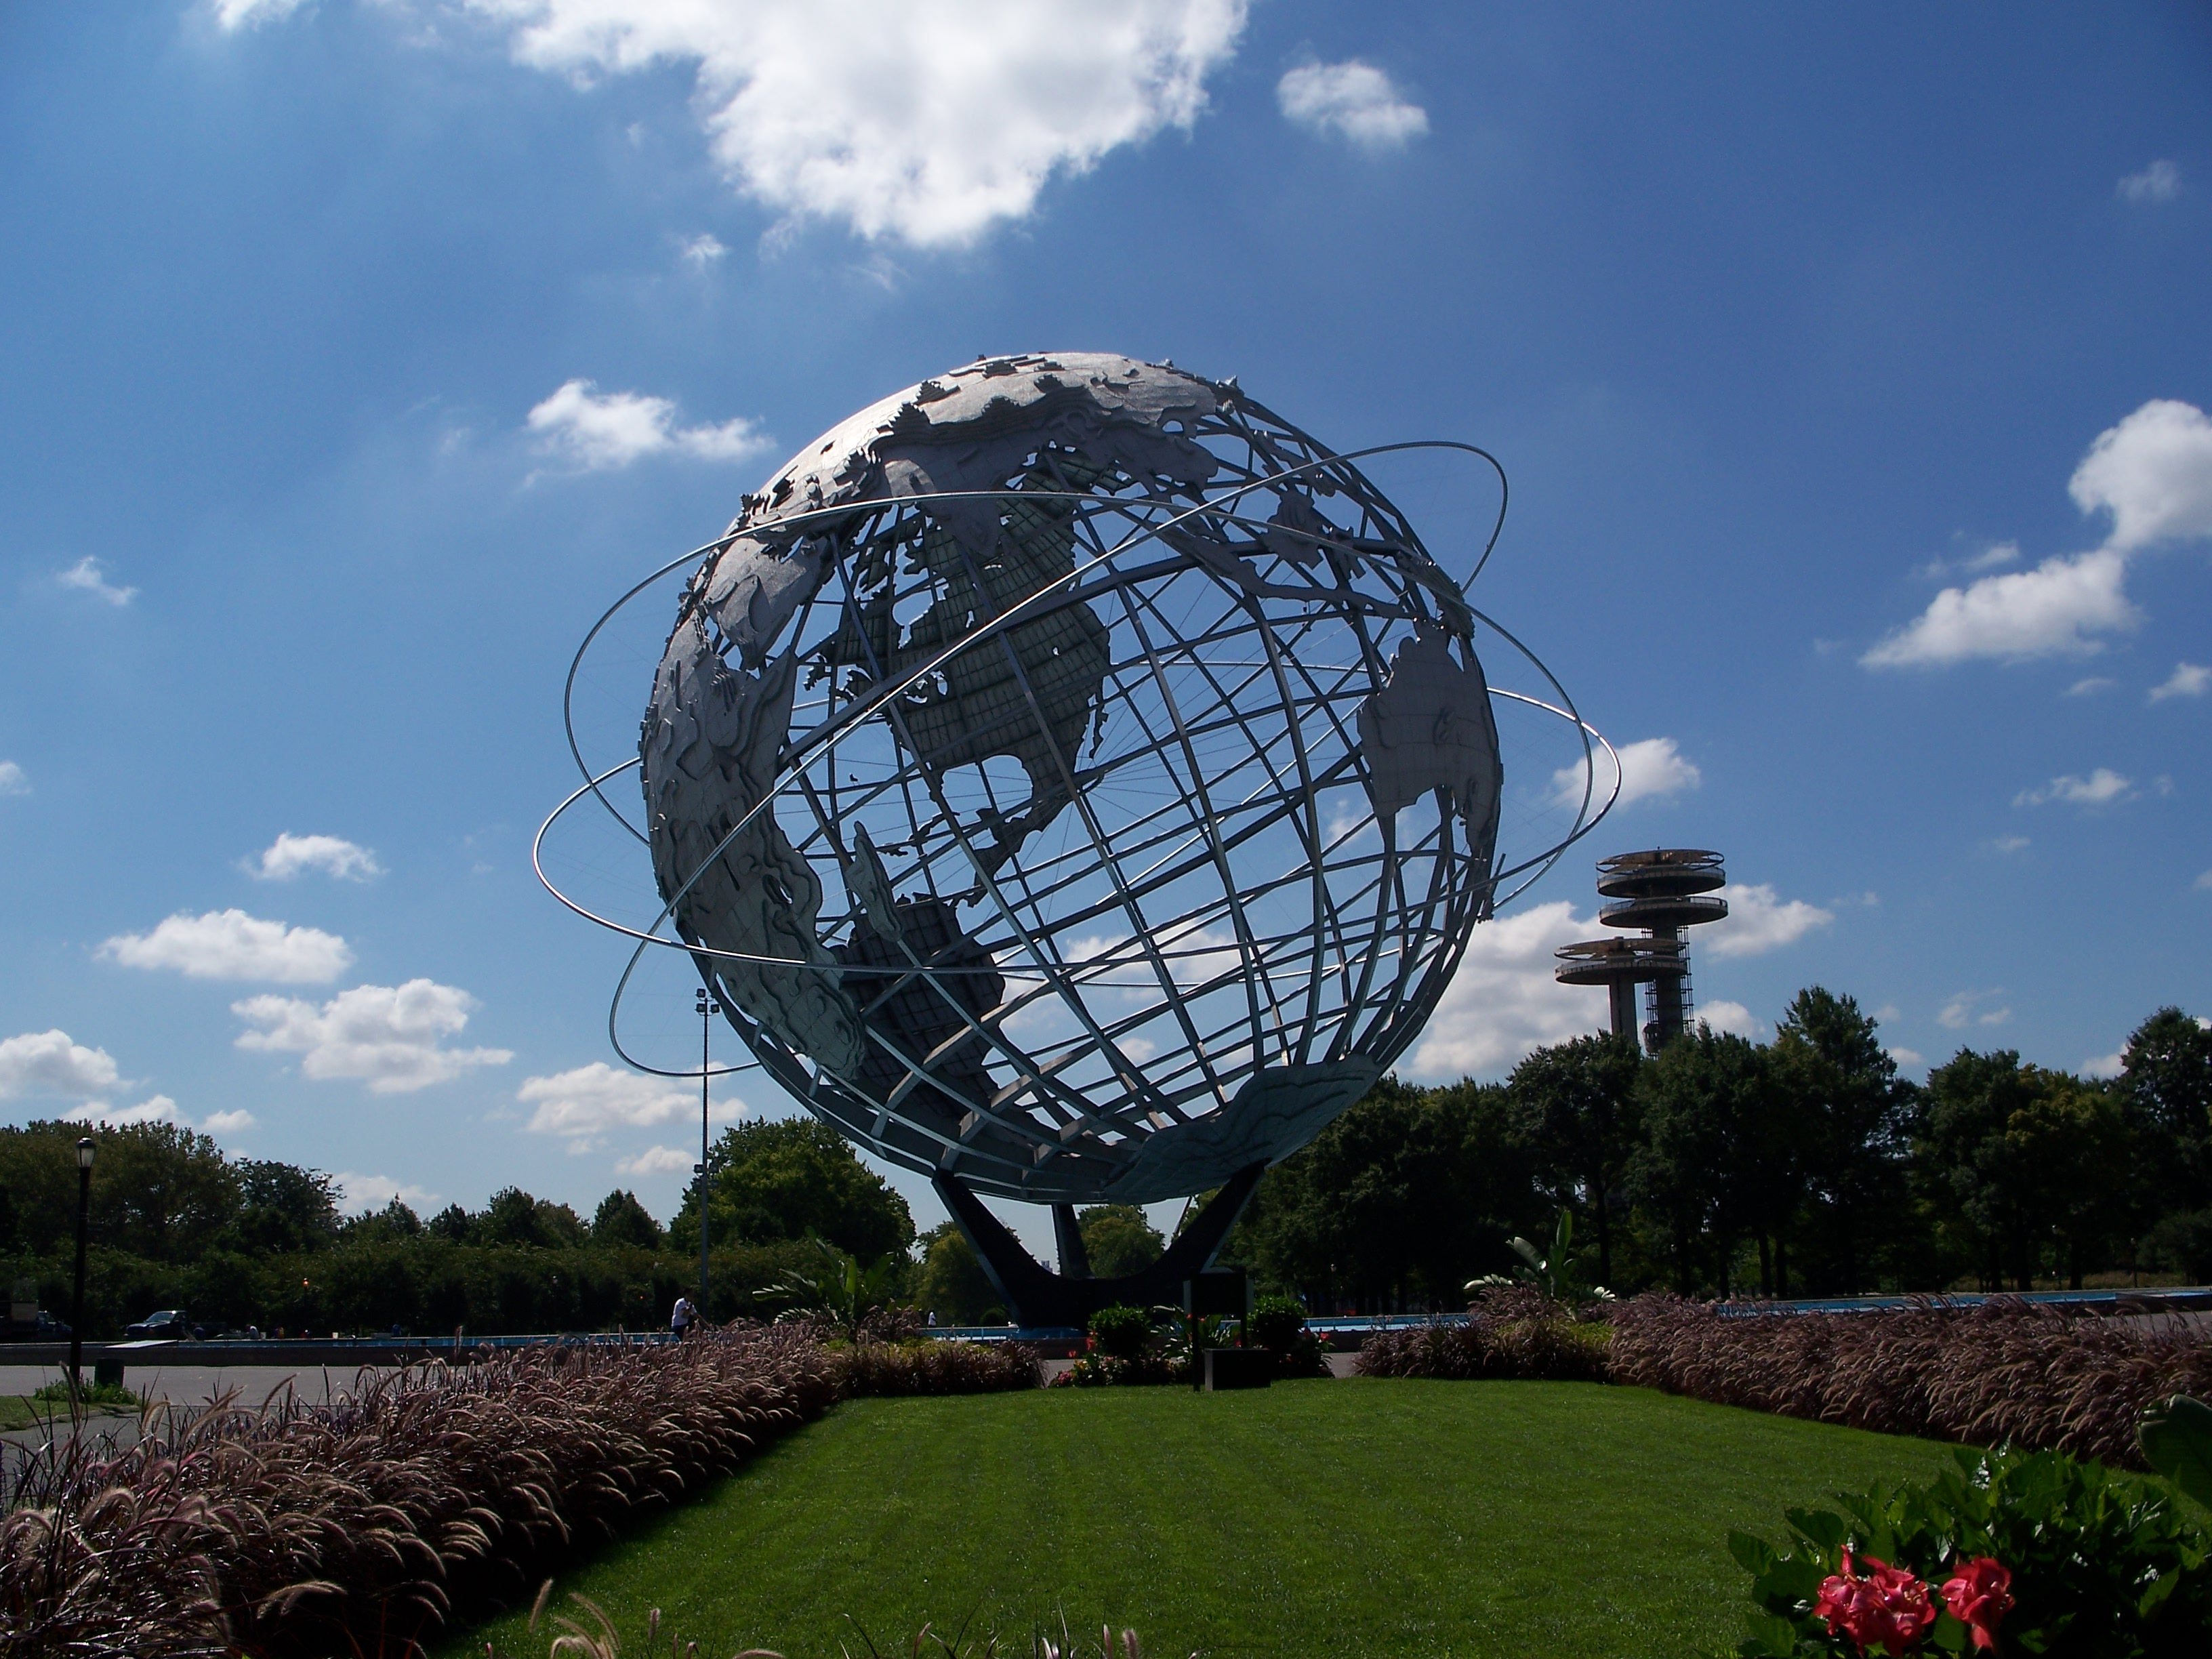 Flushing Meadows Corona Park is getting upgrades as part of $40 million city program